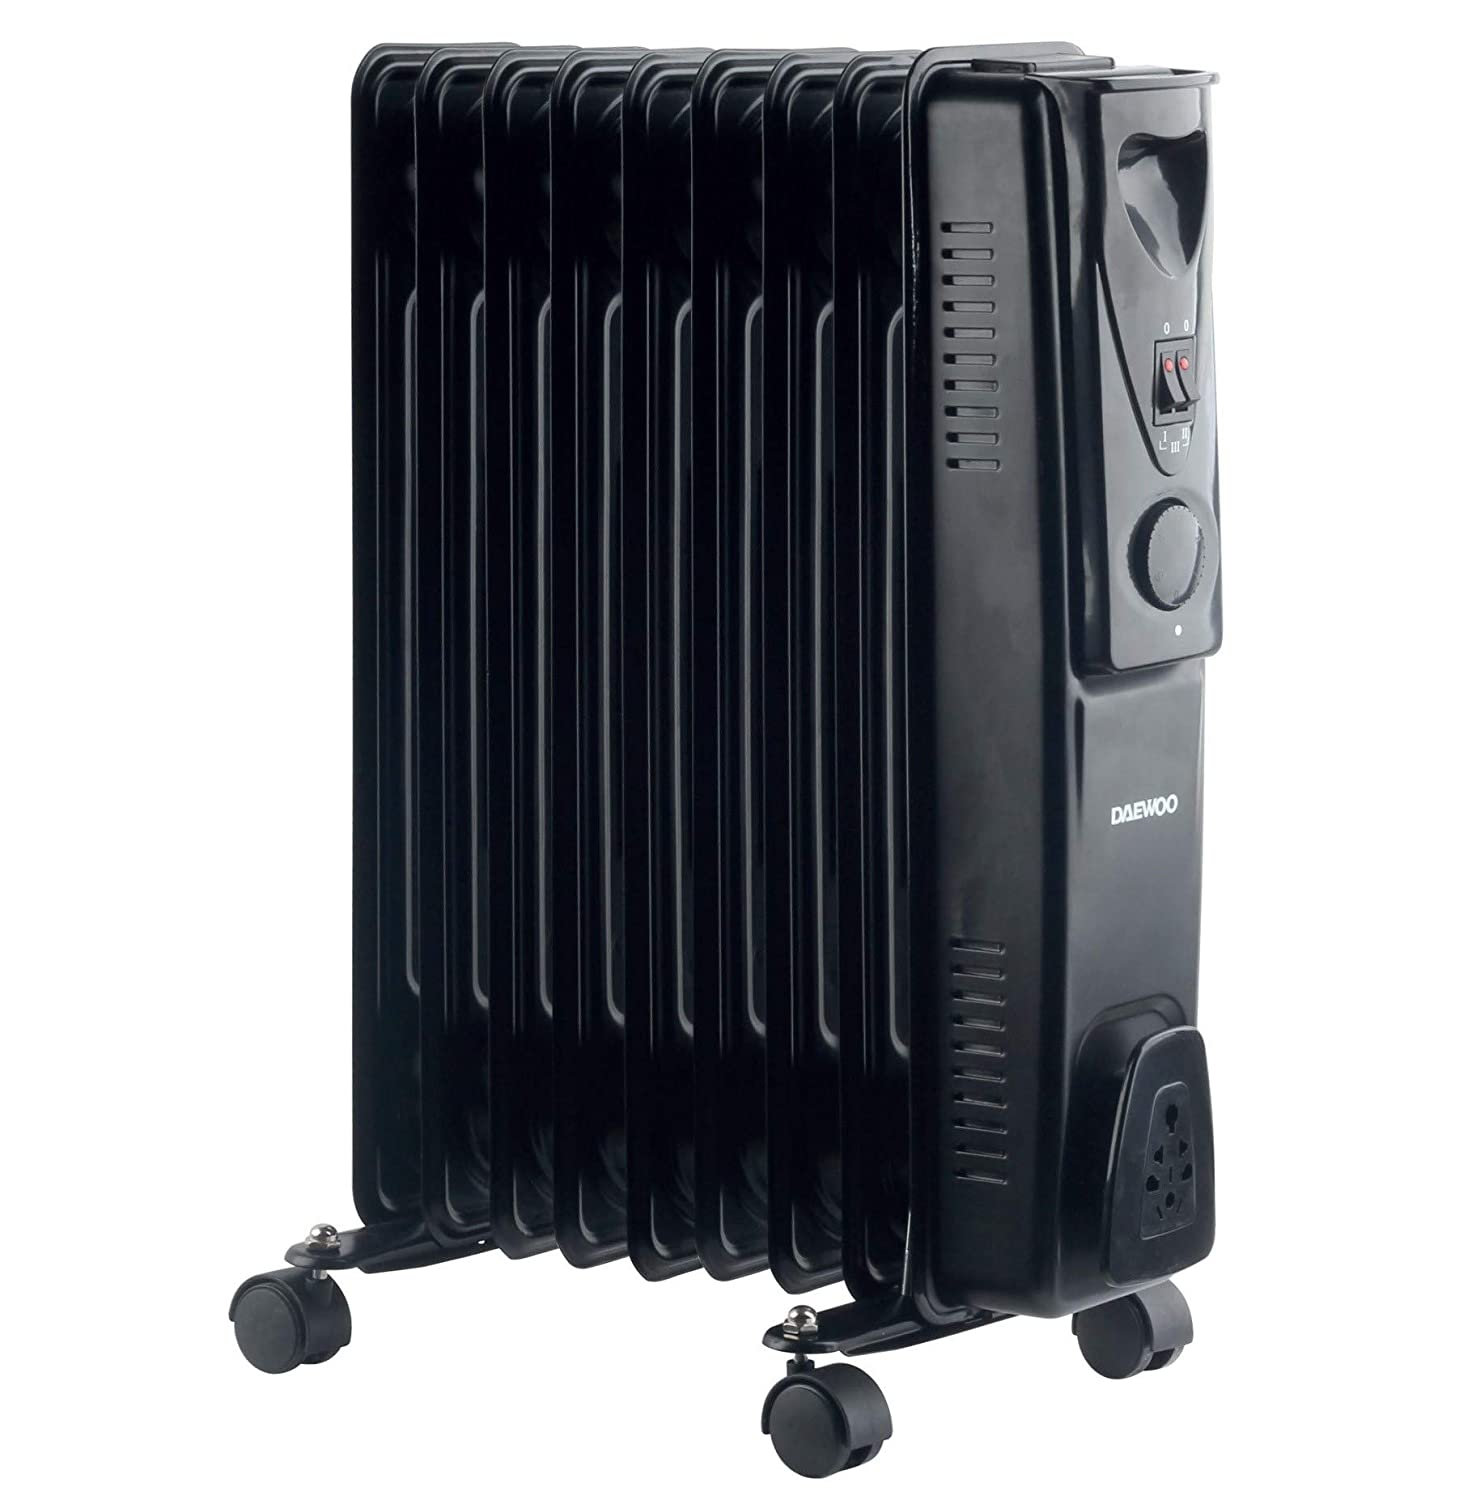 Daewoo 2000W Portable Oil Filled Radiator Heater with Thermostat (Black)